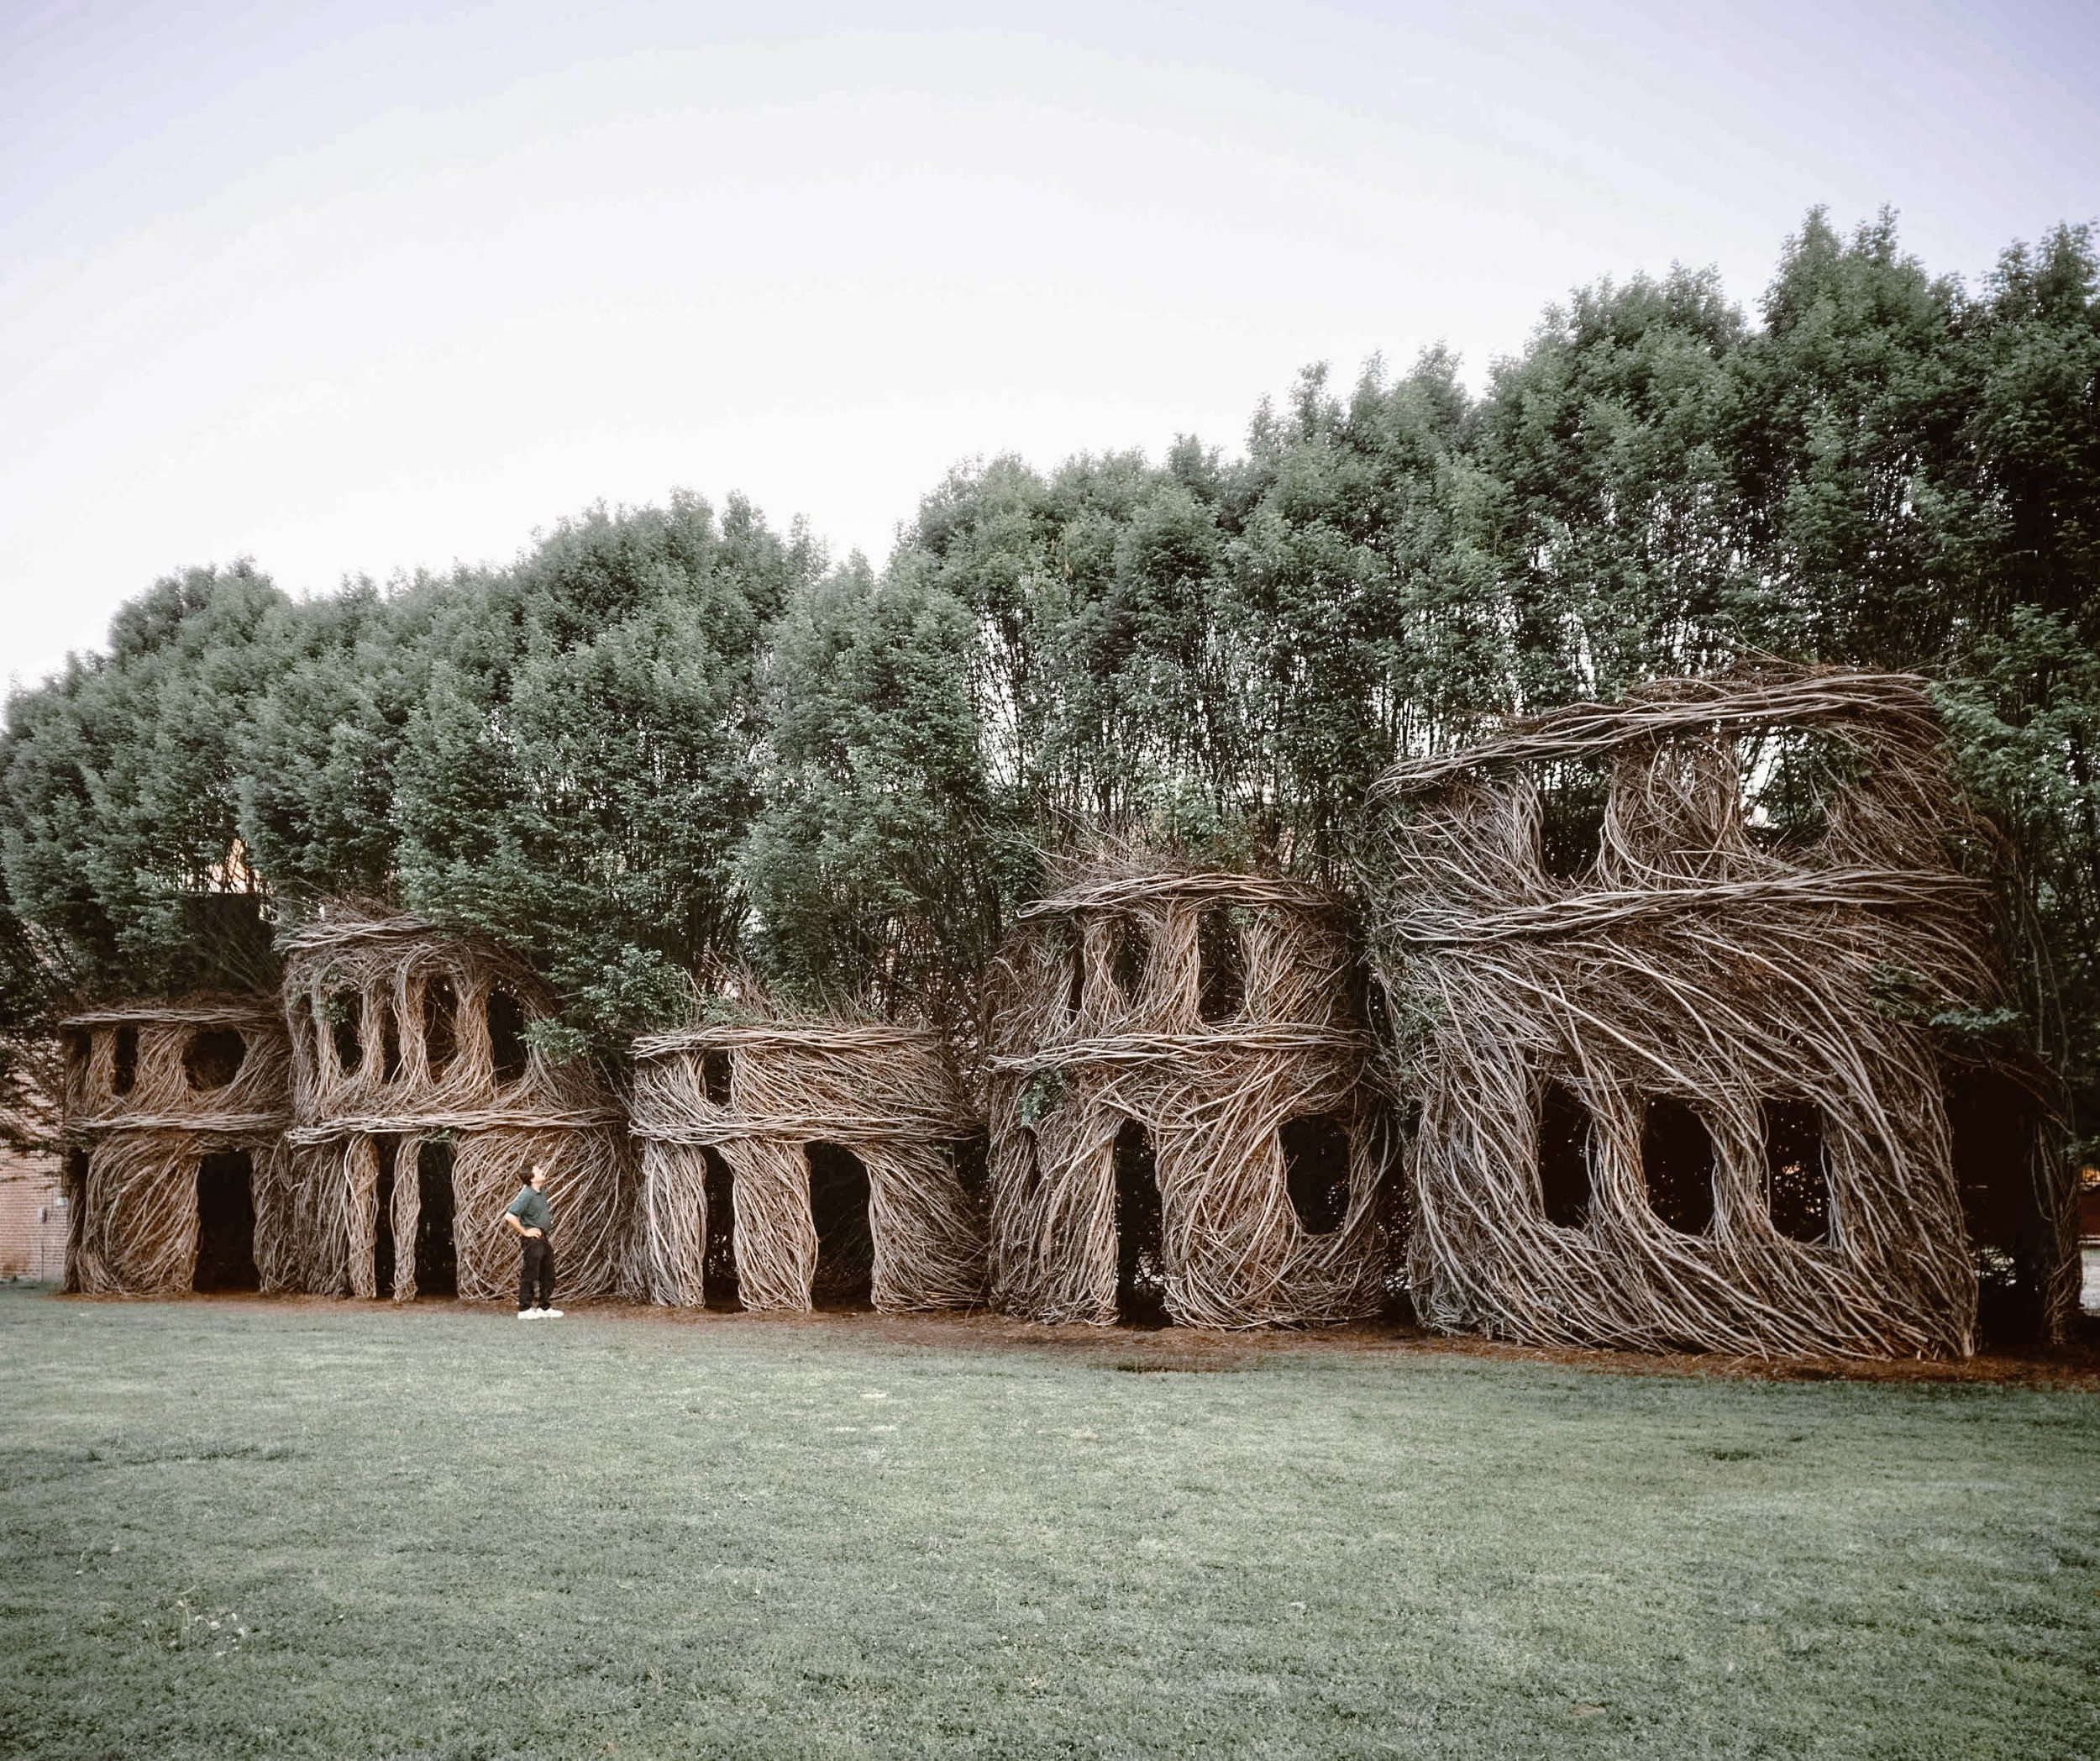 Patrick Dougherty: Just Around the Corner, installed in New Harmony, Indiana (2003)